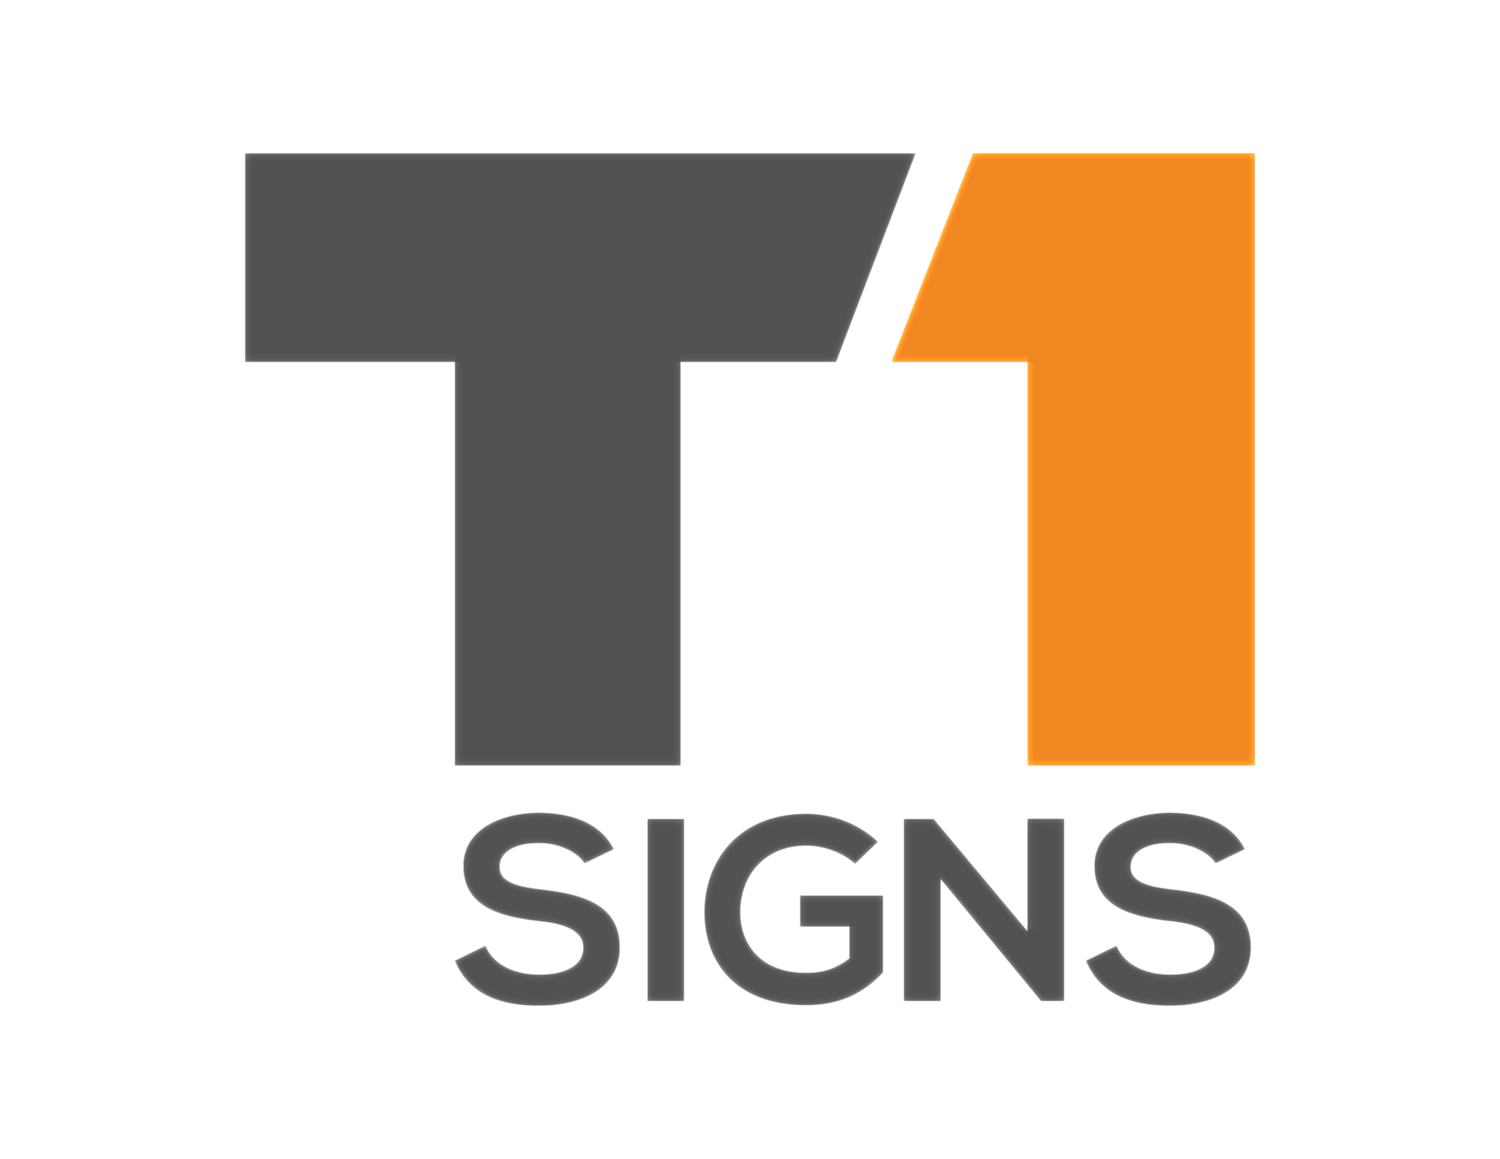 T1 SIGNS